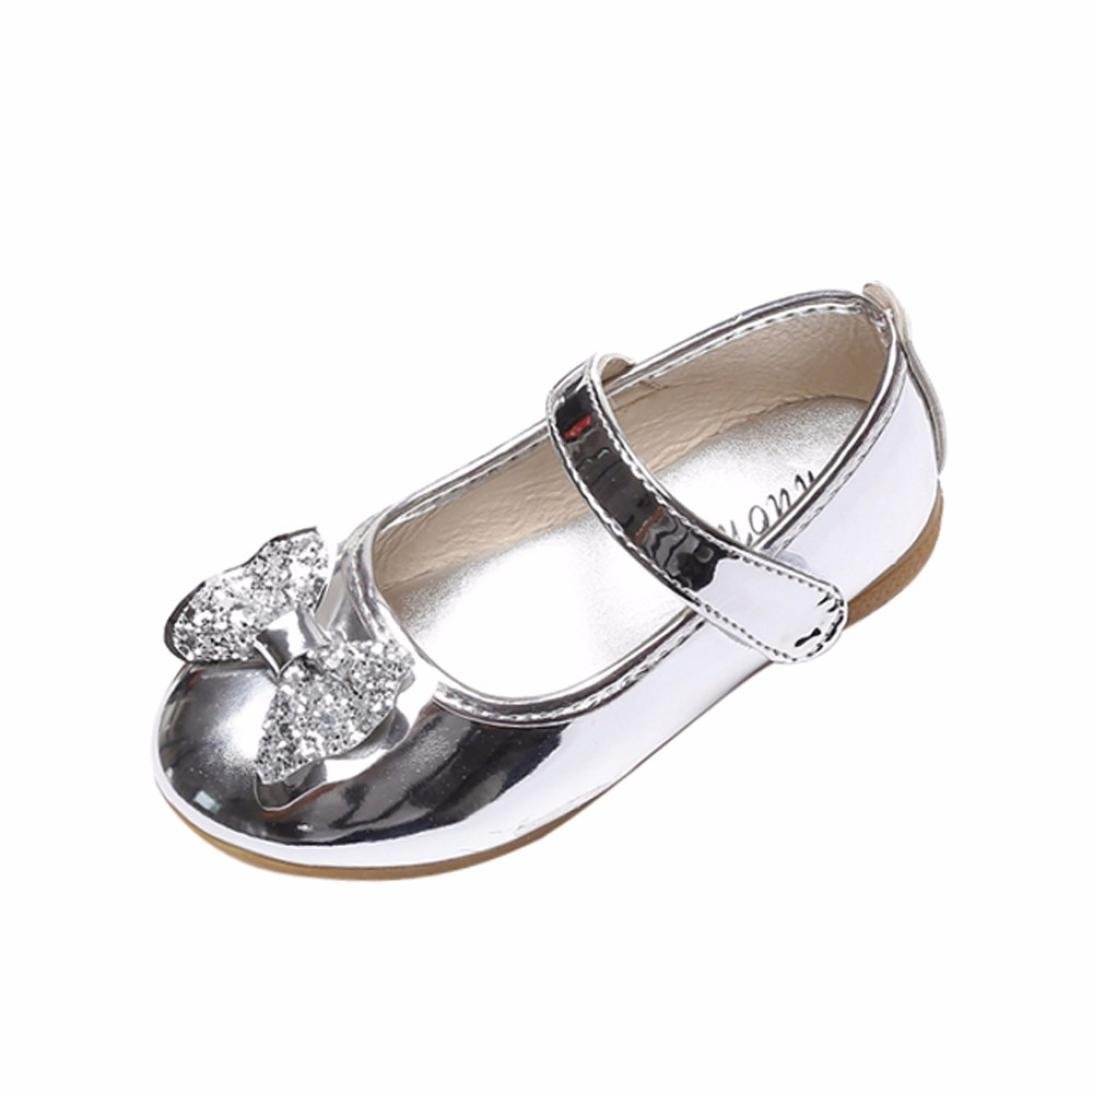 KONFA Teen Toddler Baby Girls Bling Sequins Bowknot Single Shoes,for 1-6 Years old,Little Princess Elegant Party Dance Boots